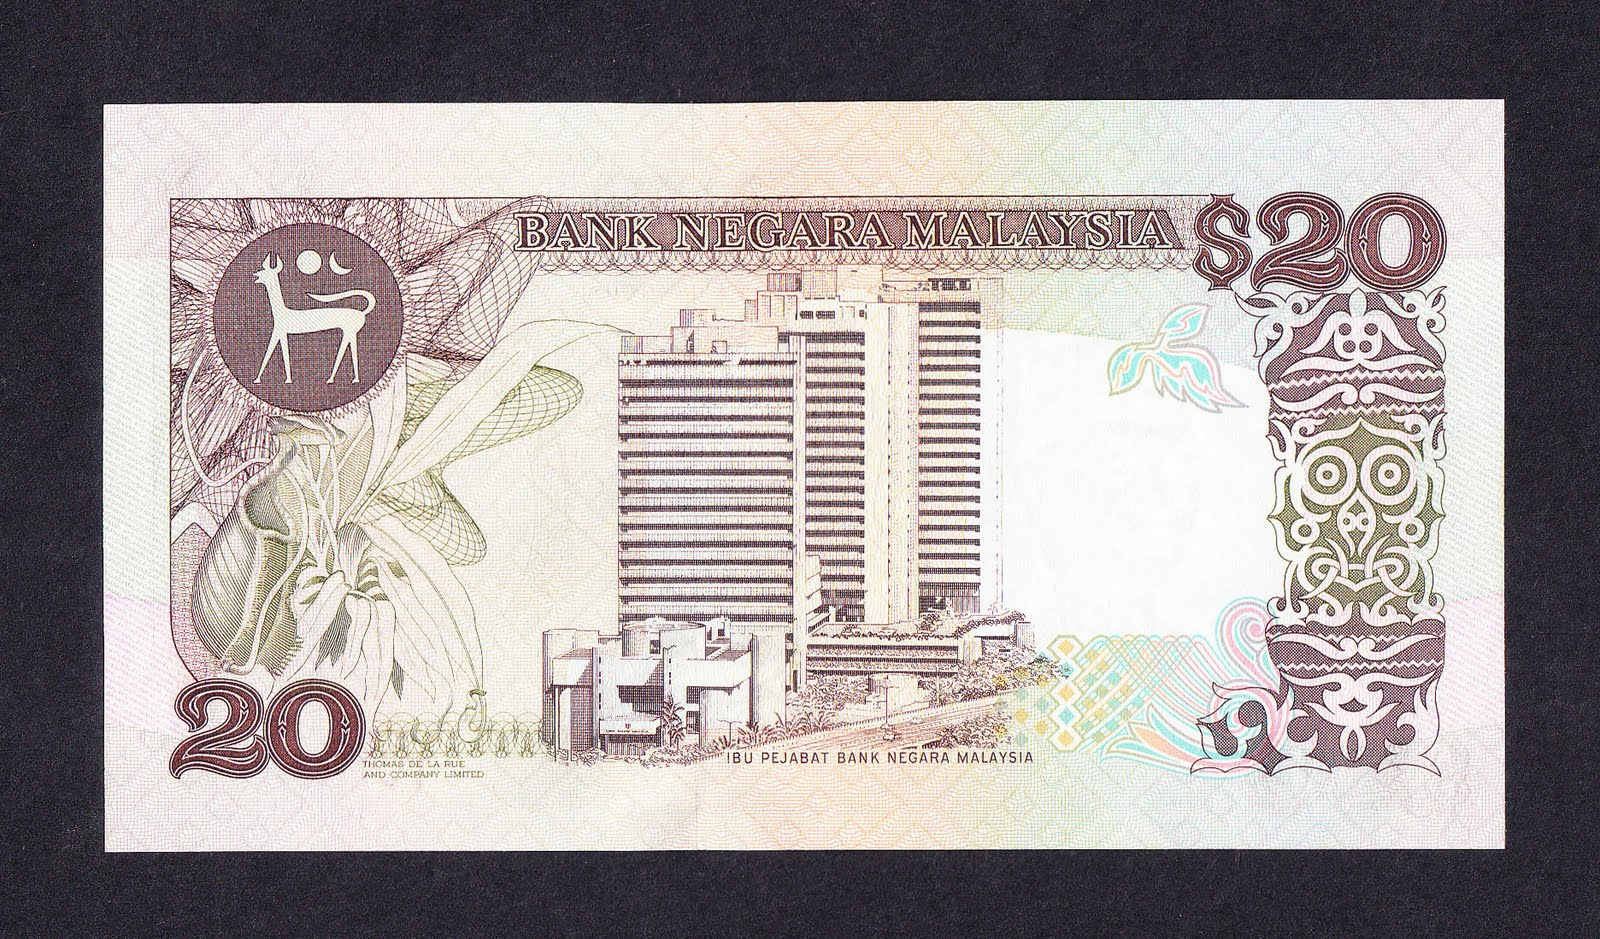 RM20 note with a right angle view of Bank Negara's headquarters